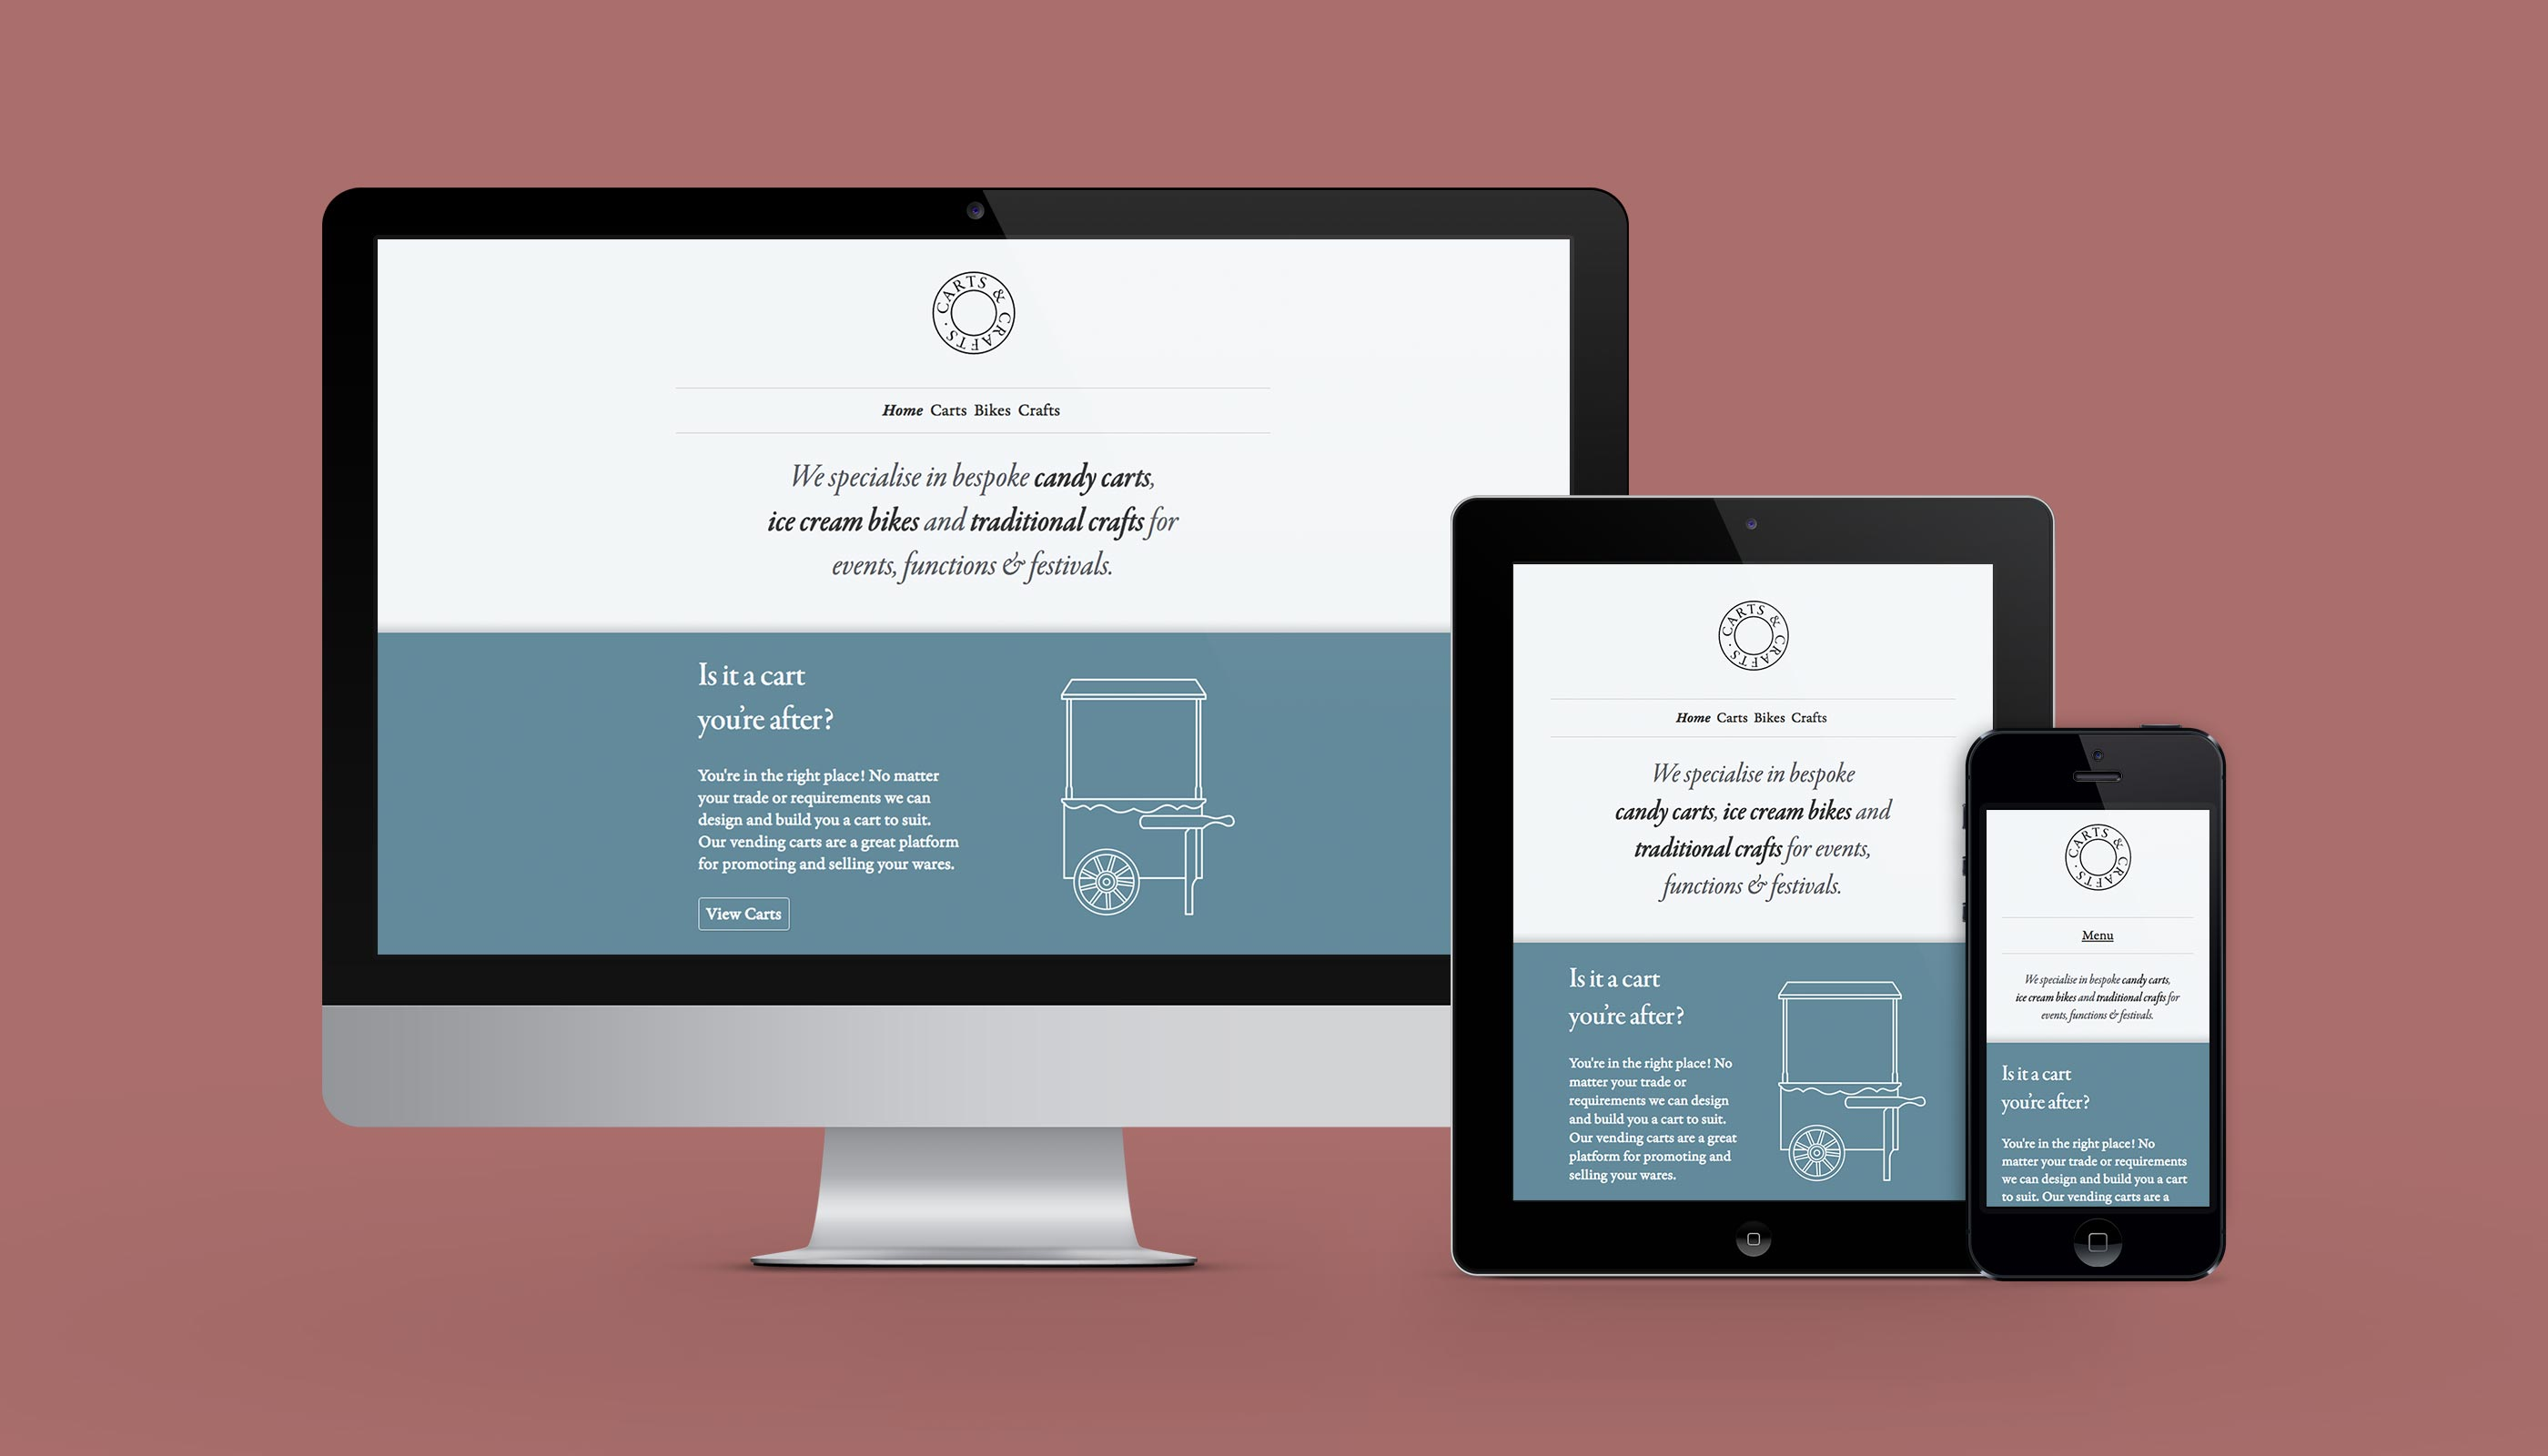 Responsive website design and development for Carts & Crafts in Harwich, Essex.